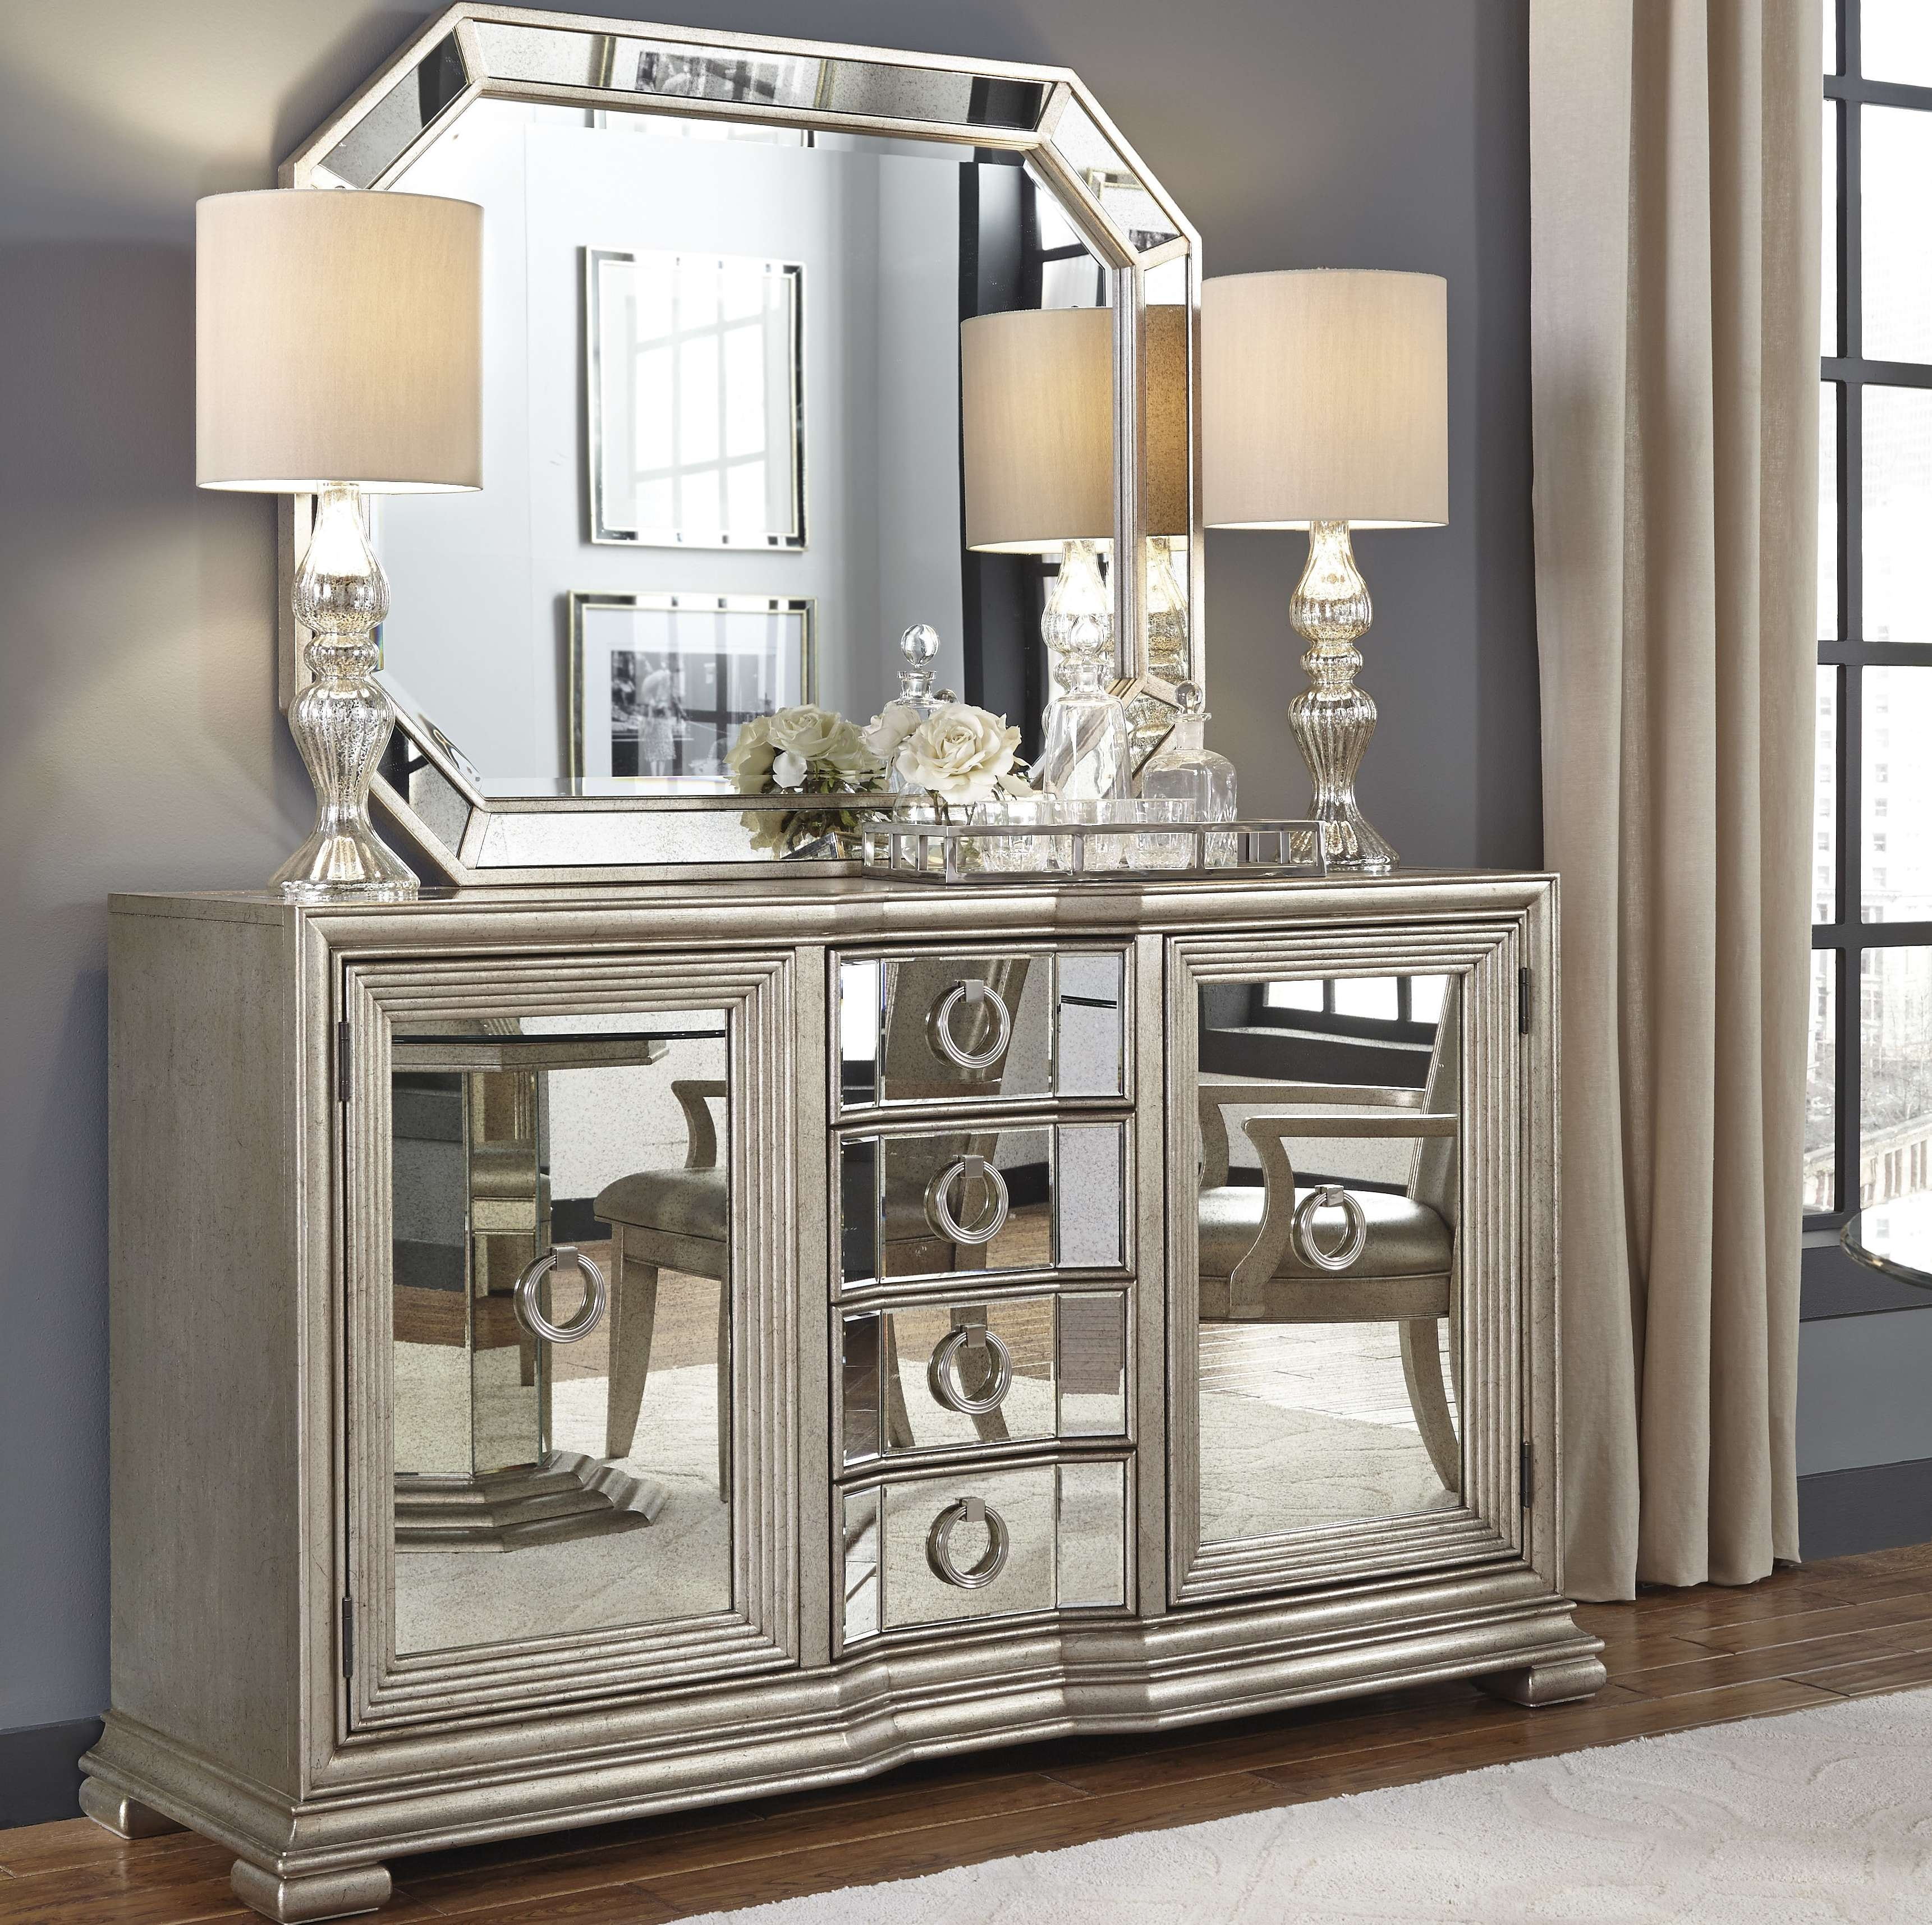 Rosdorf Park Sorrel Mirrored 4 Drawer Sideboard & Reviews | Wayfair Inside Small Mirrored Sideboards (View 13 of 20)